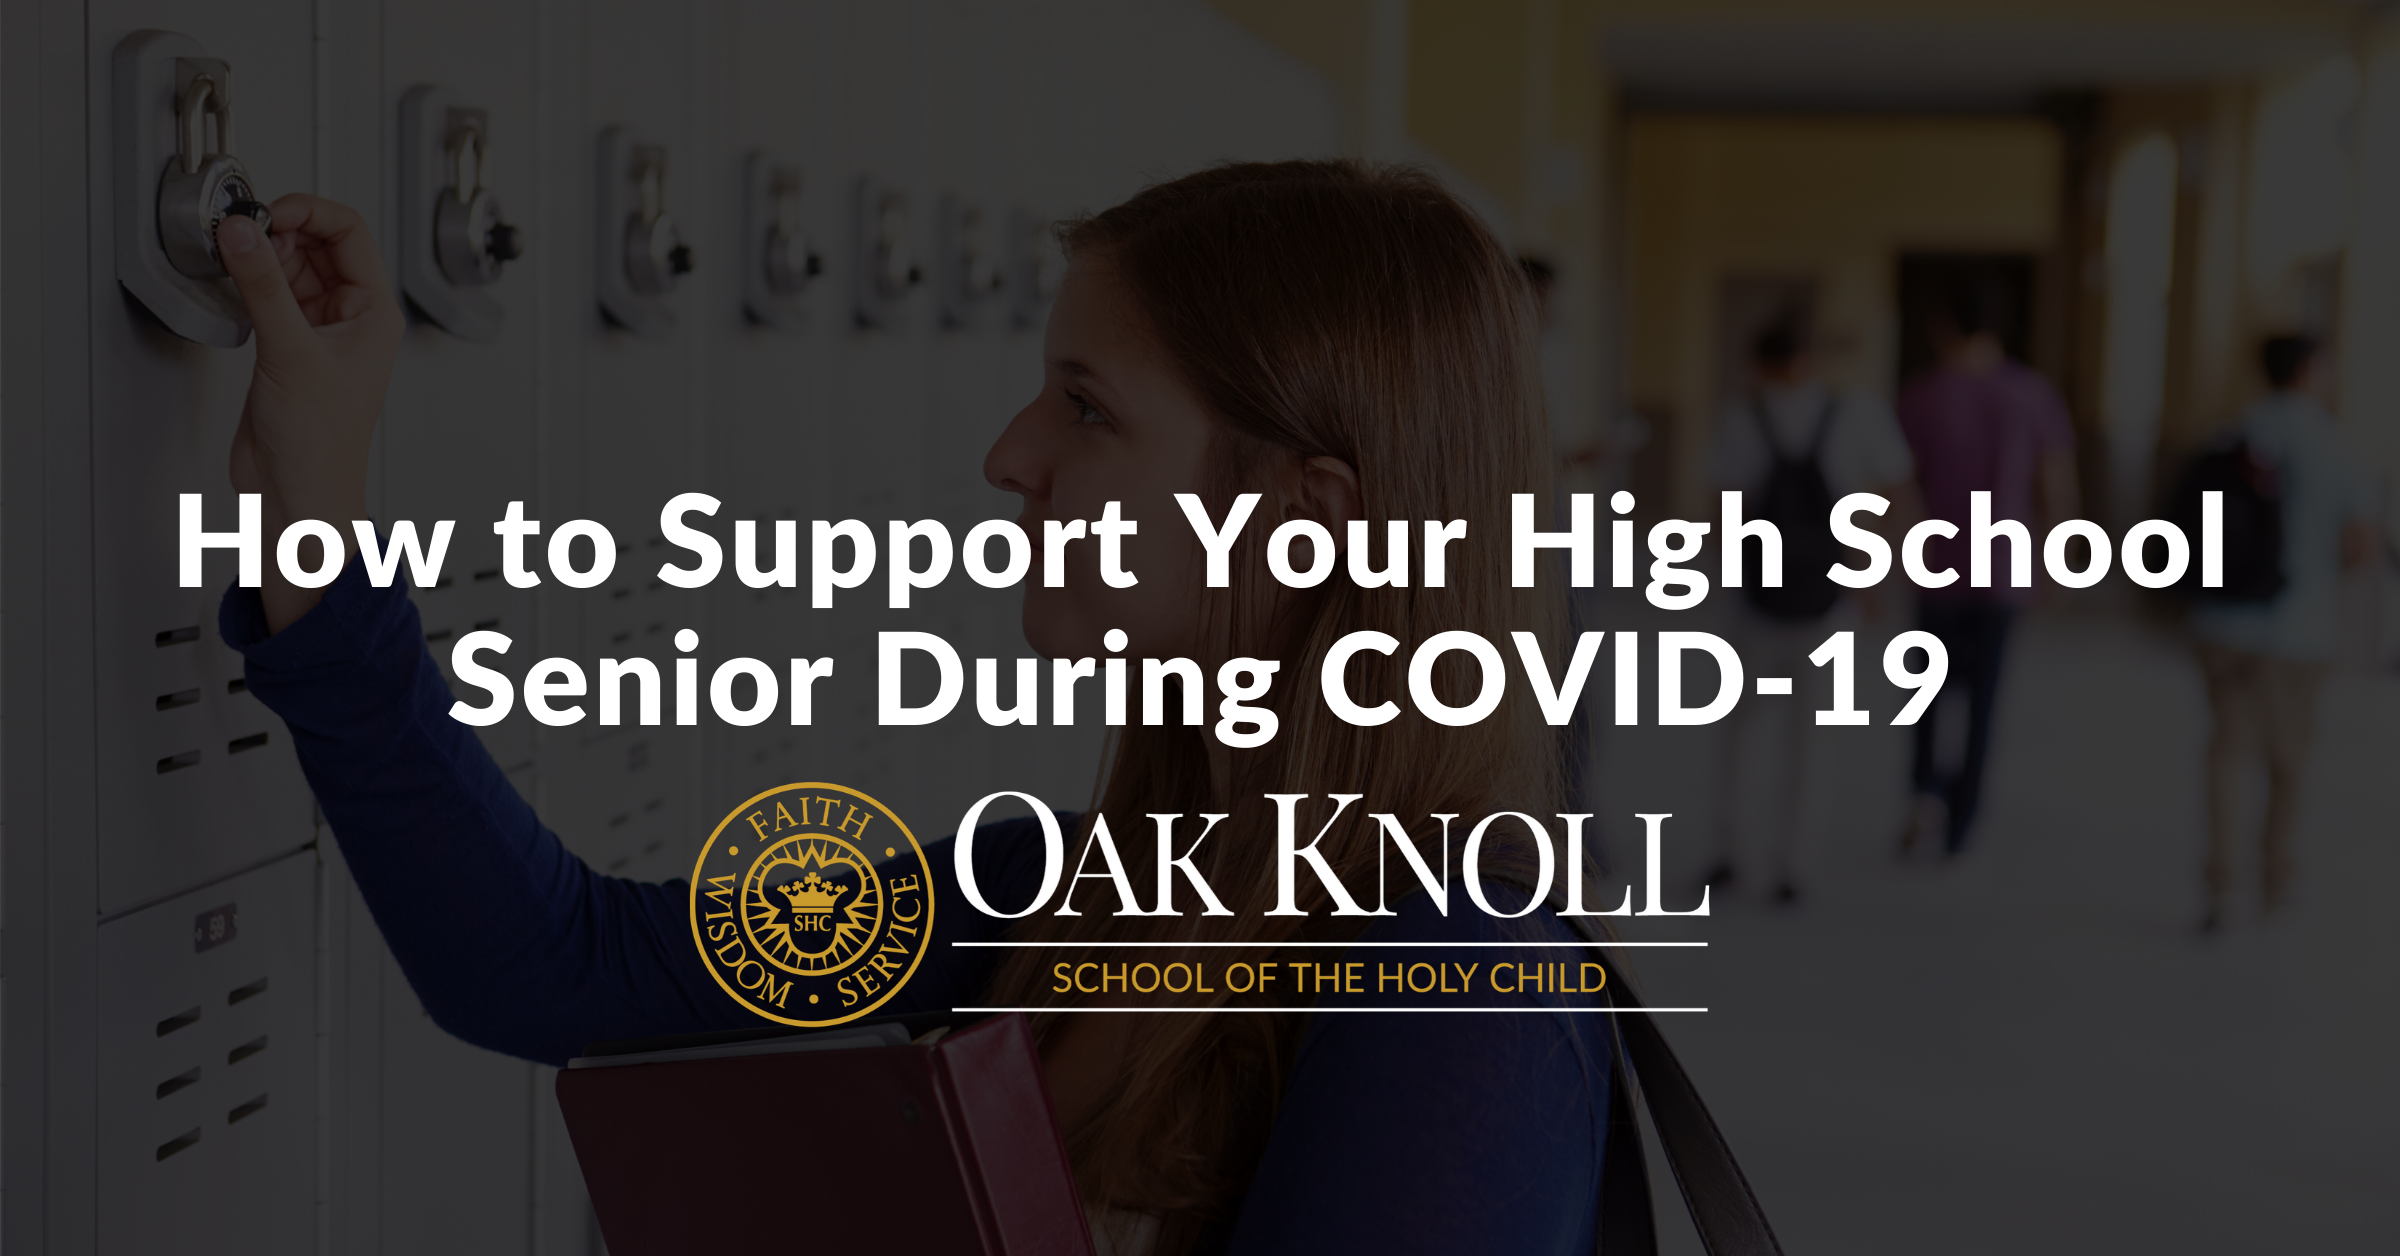 How to Support Your High School Senior During COVID-19